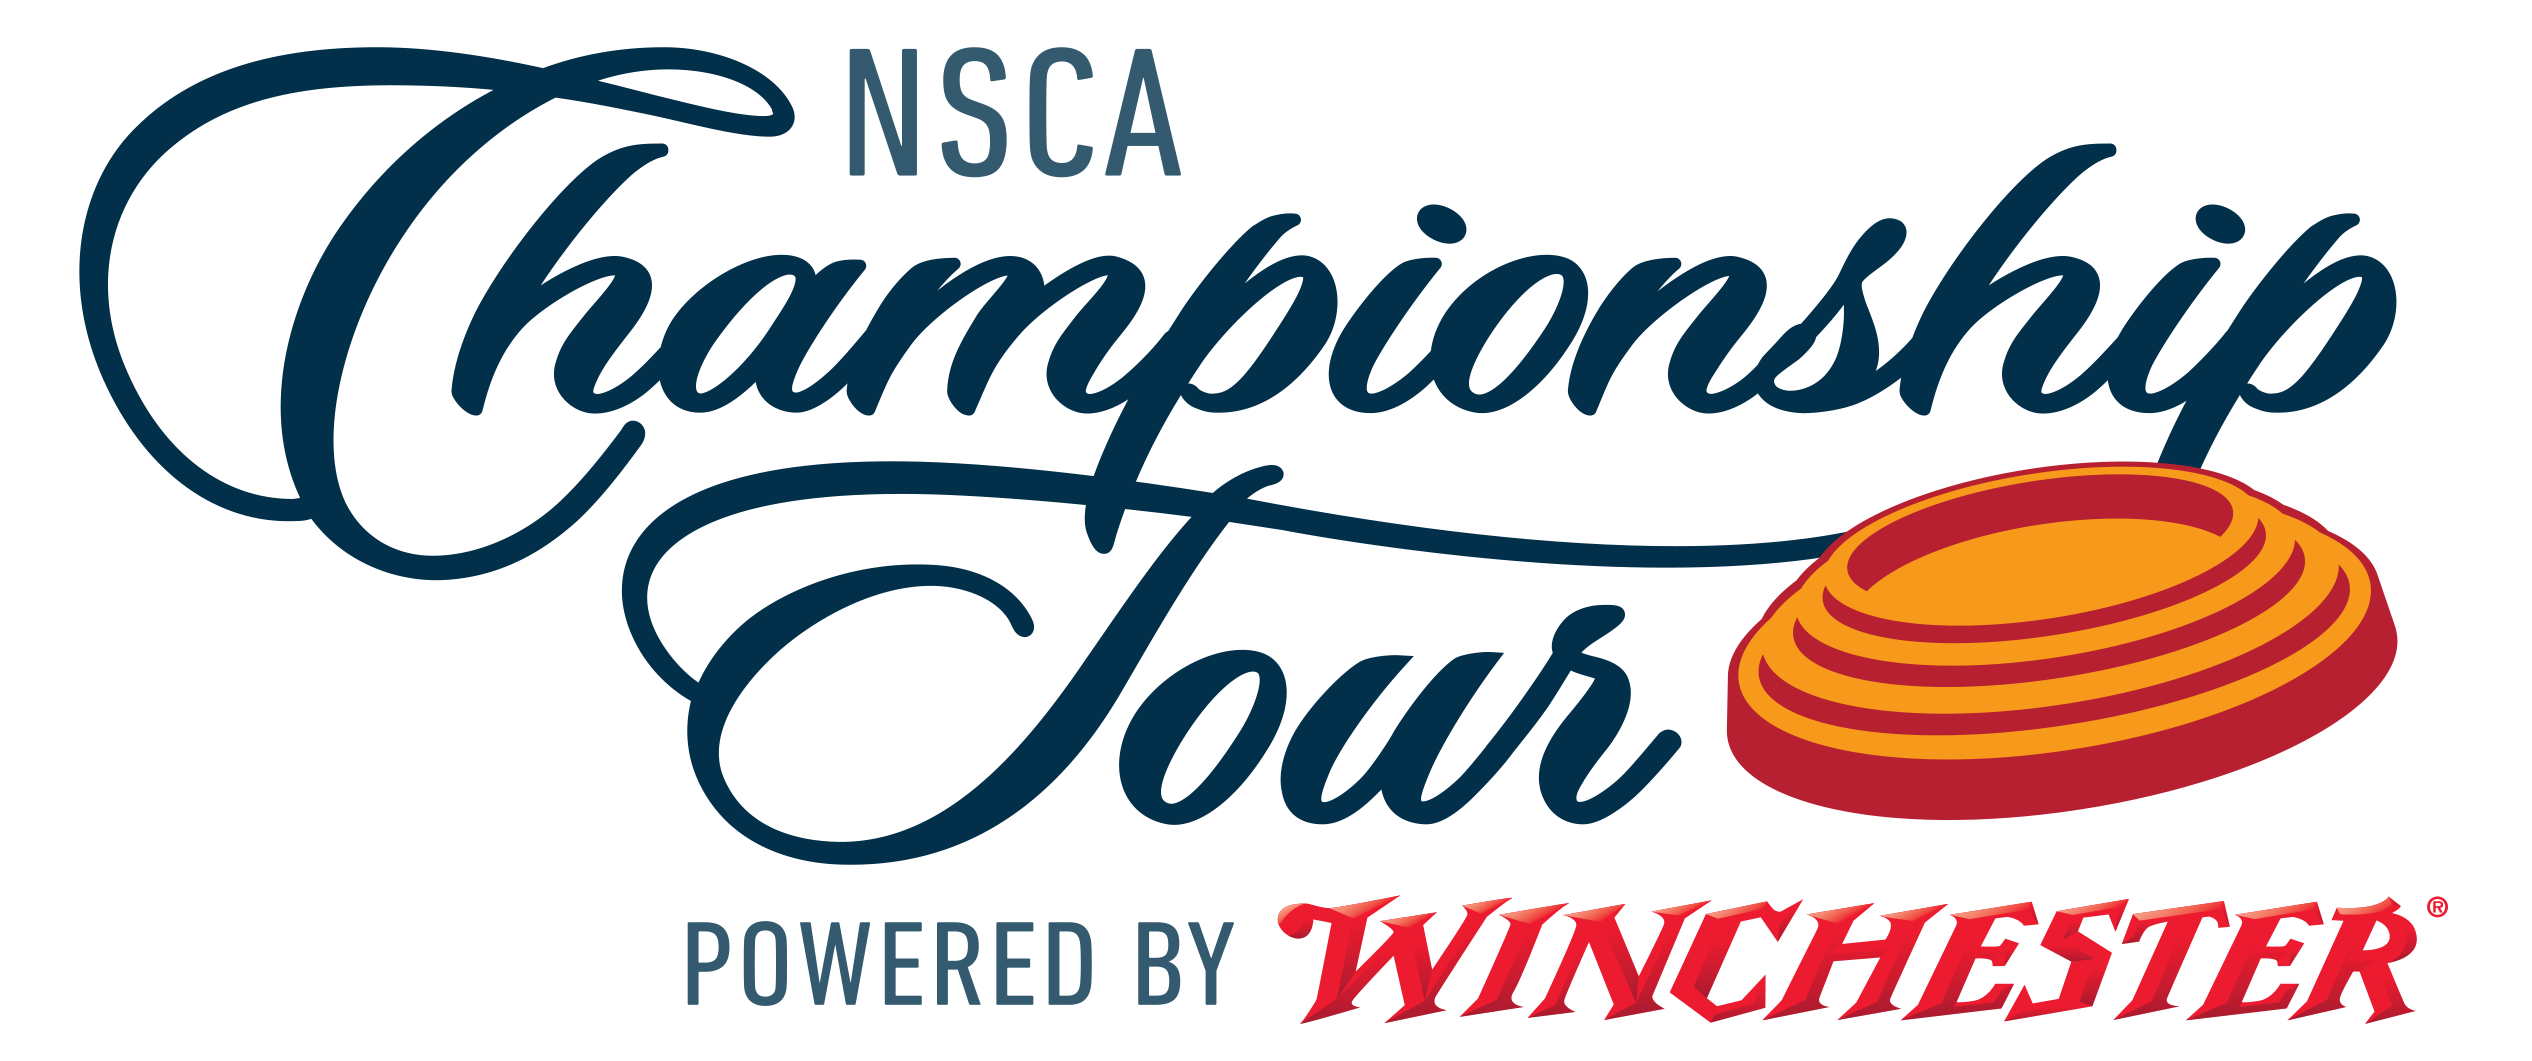 NSCA Championship Tour, Powered by Winchester